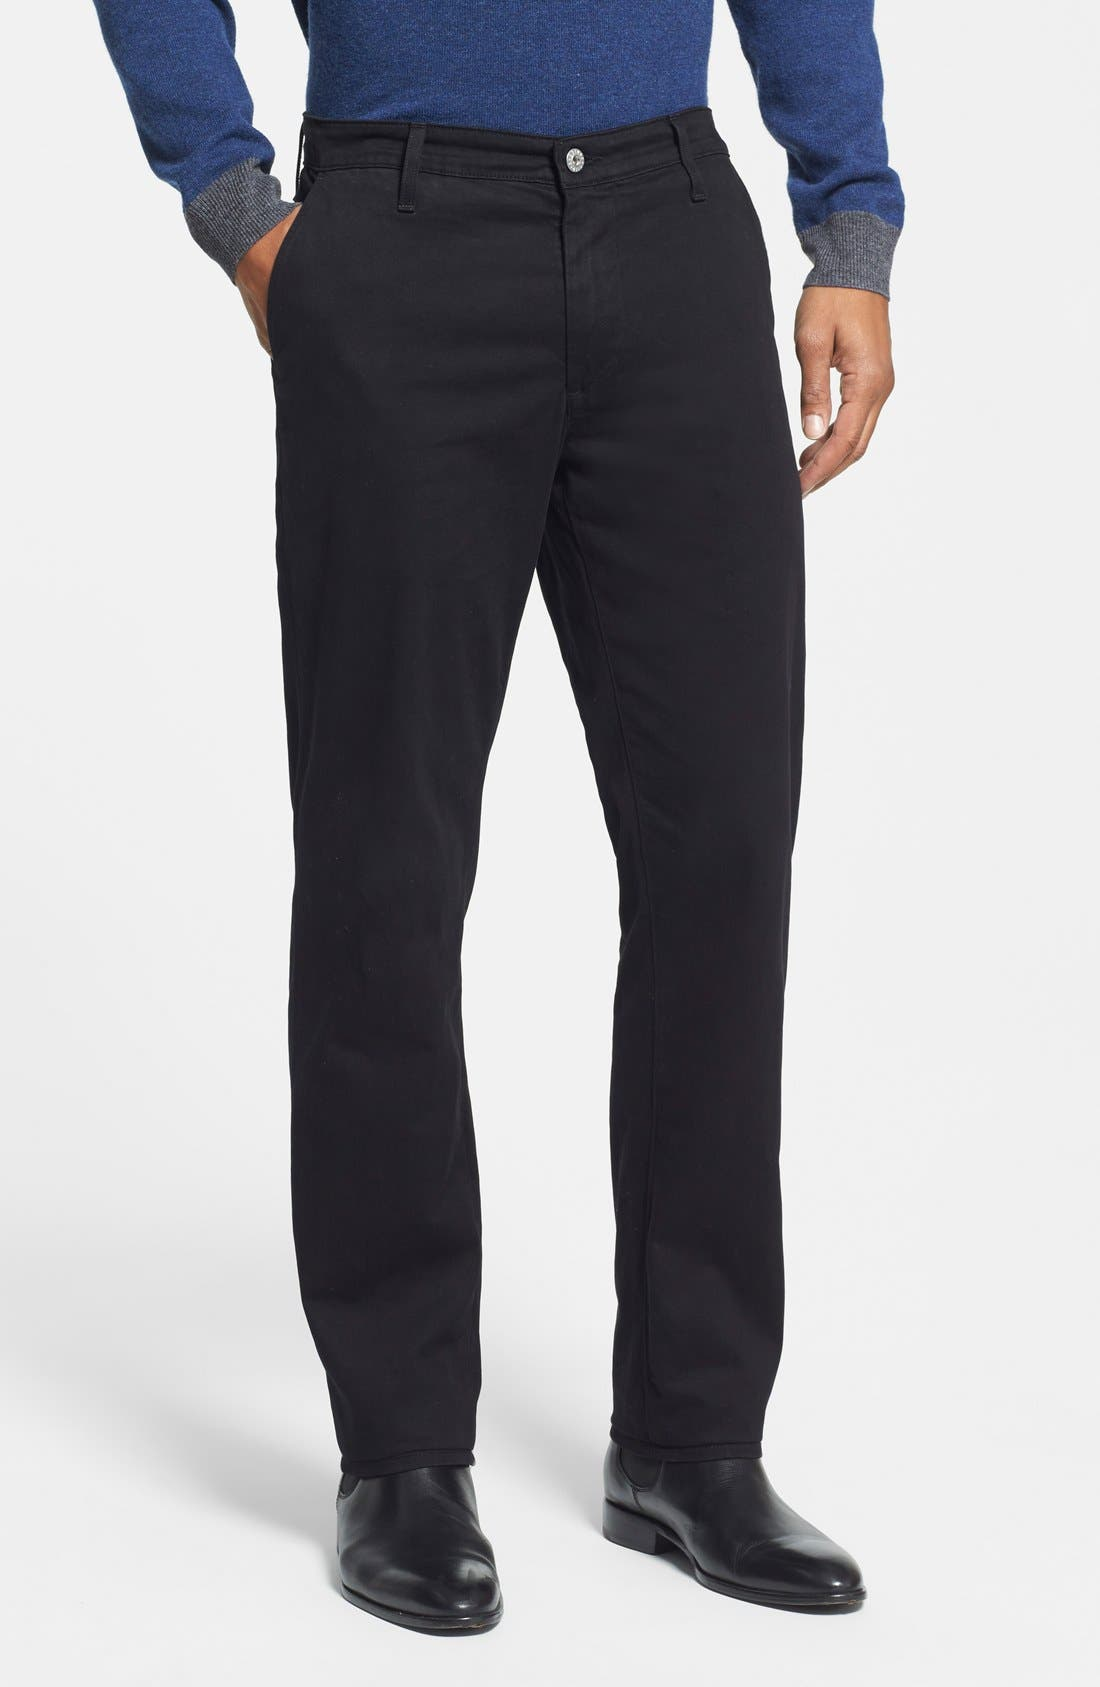 AG 'The Lux' Tailored Straight Leg Chinos